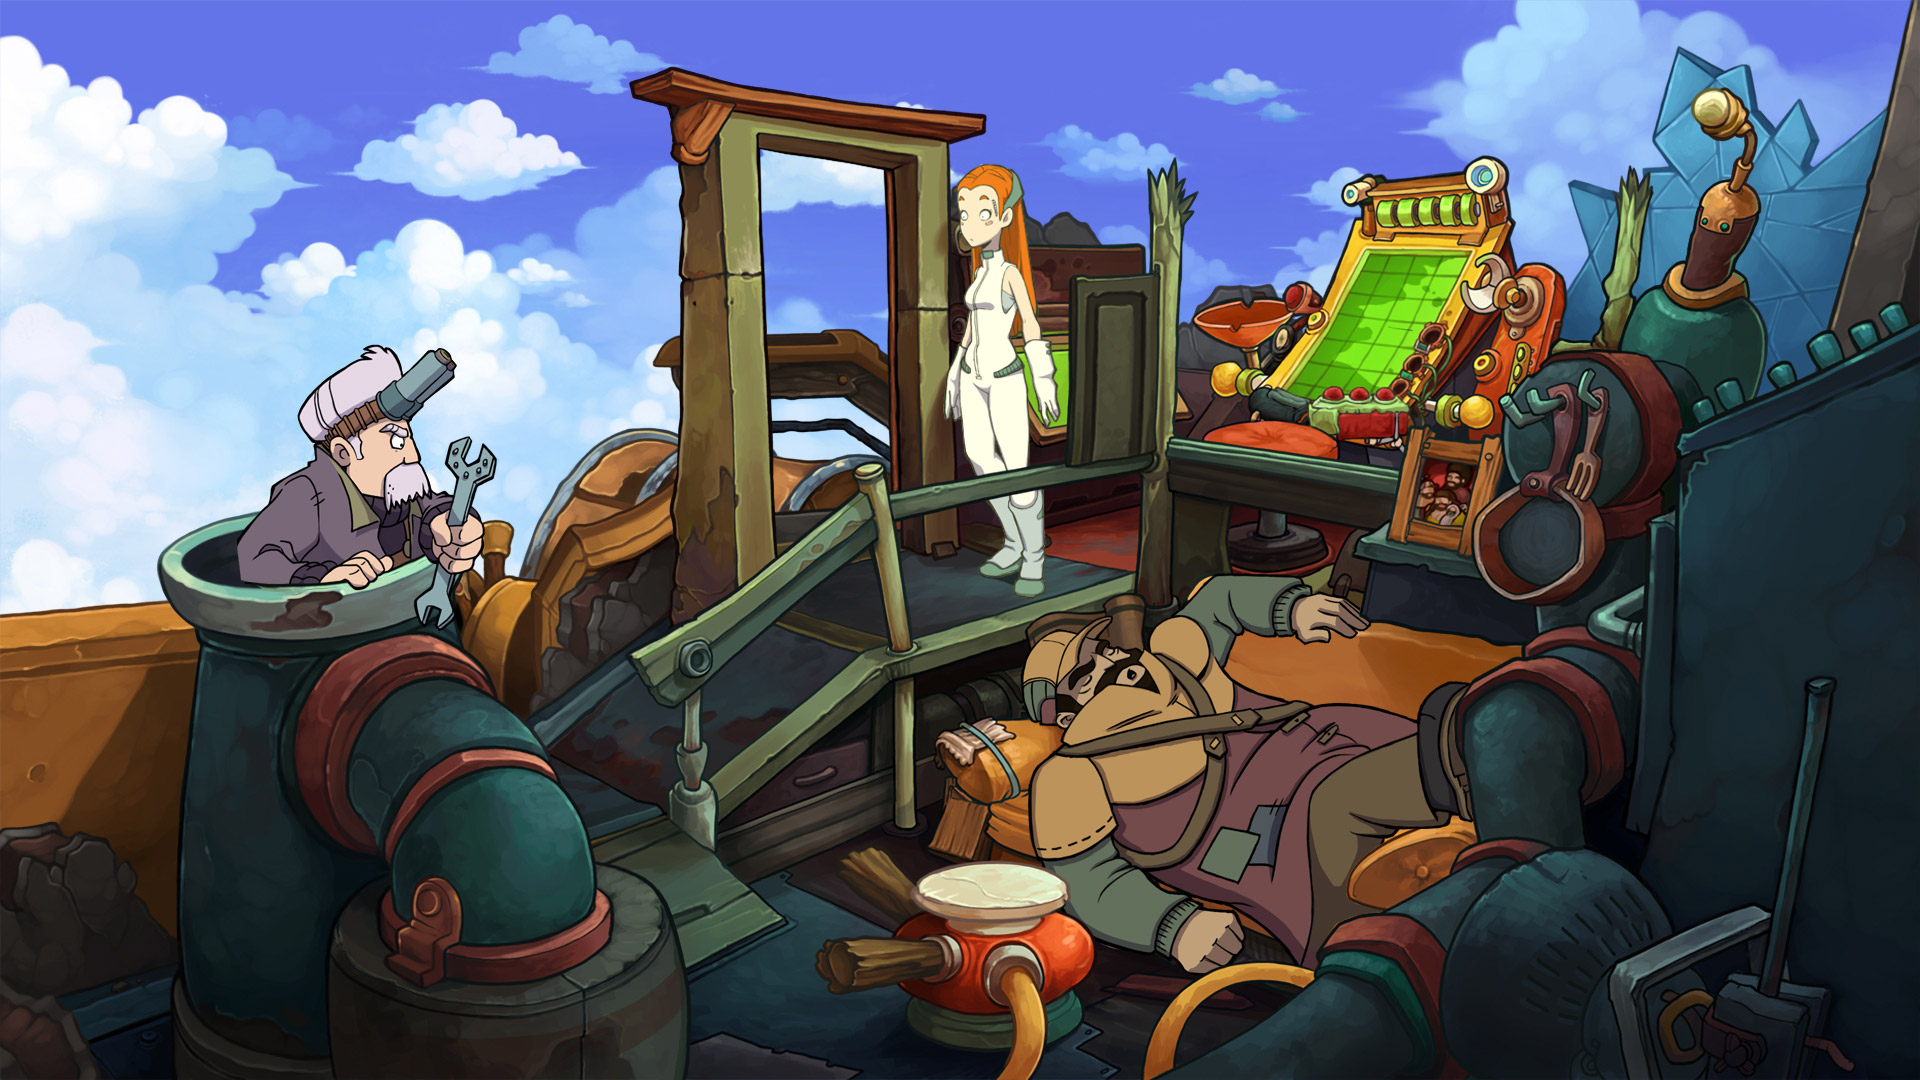 www.adventure-zone.info/fusion/images/photoalbum/album_555/goodbye_deponia_17.jpg